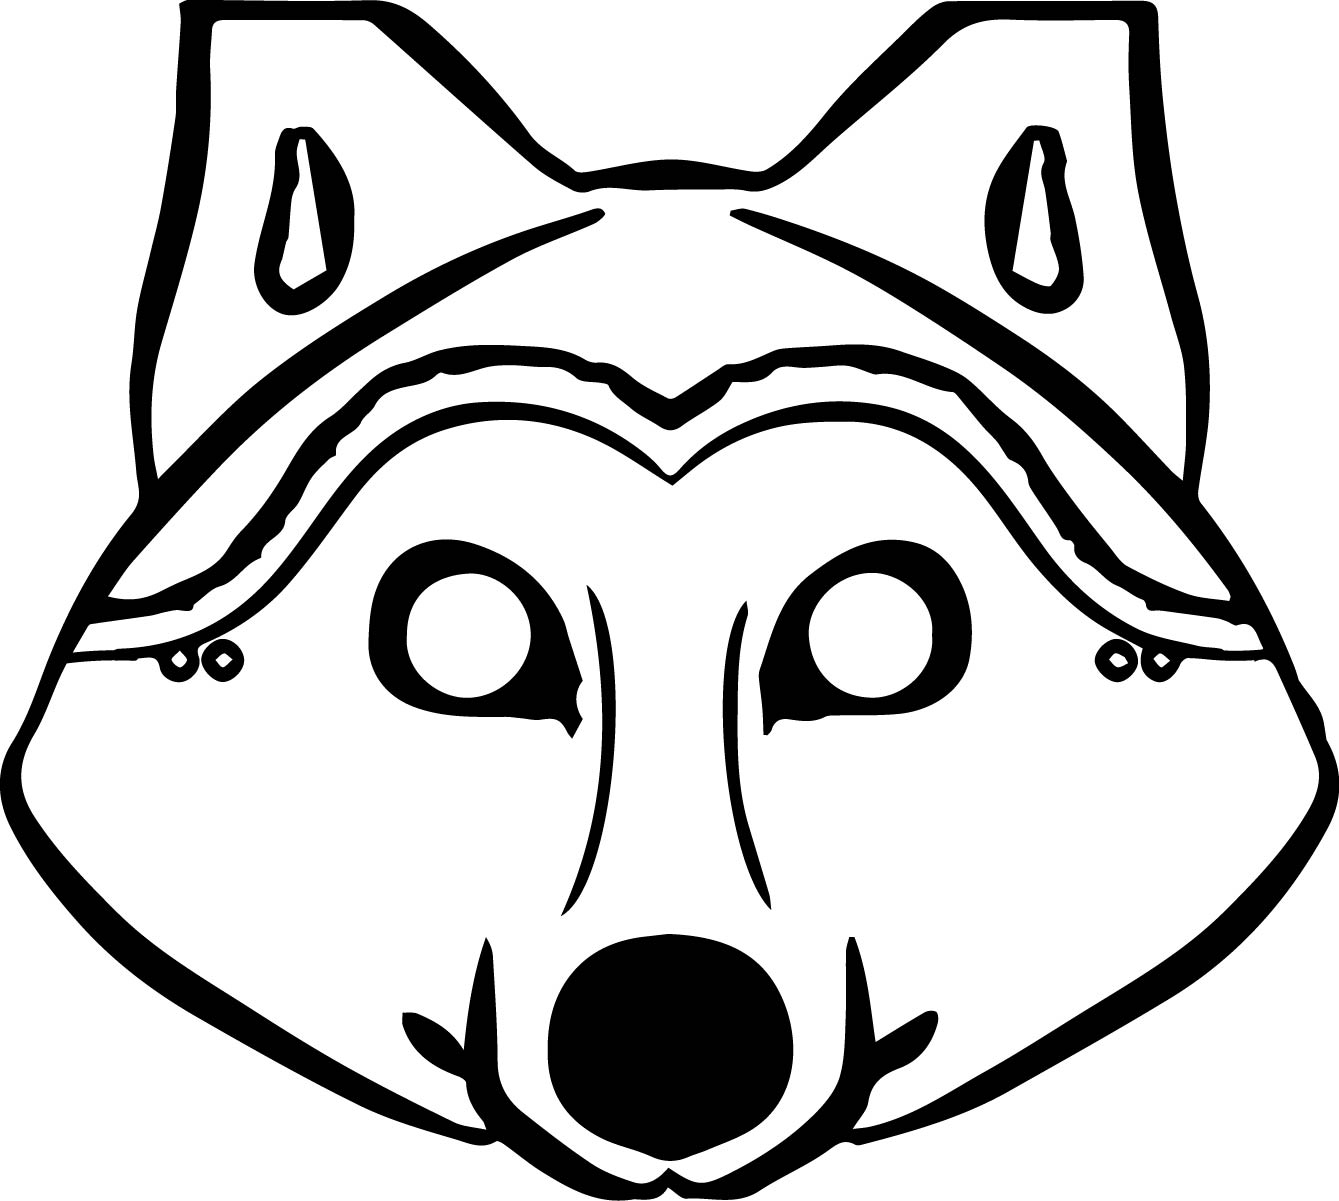 Wolf face mask clipart clip black and white library Wolf Coloring Pages | Free download best Wolf Coloring Pages ... clip black and white library